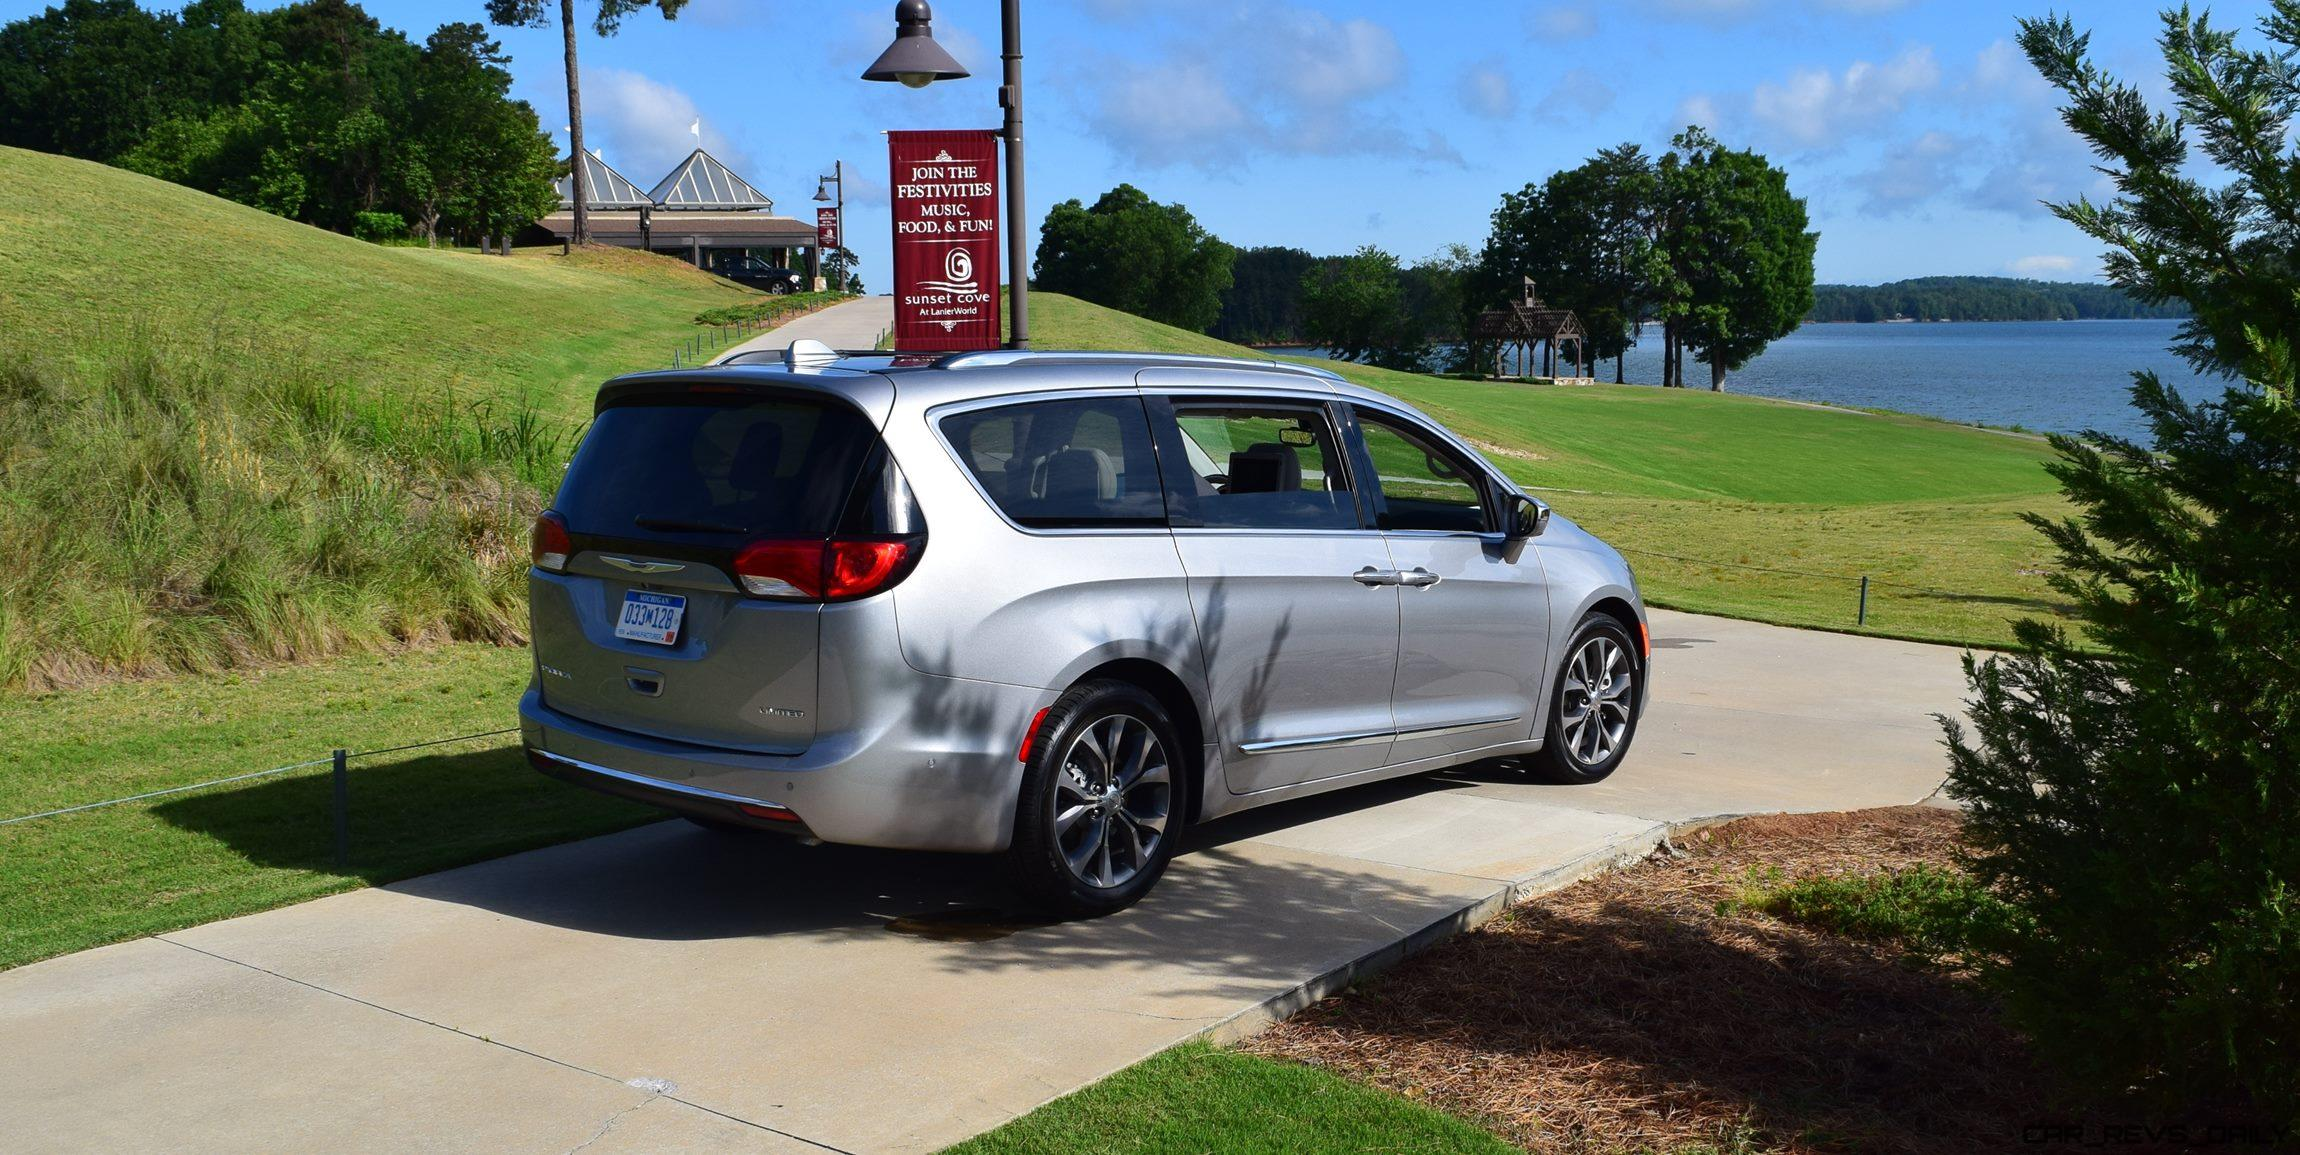 2017 chrysler pacifica touring road test review by tim. Black Bedroom Furniture Sets. Home Design Ideas